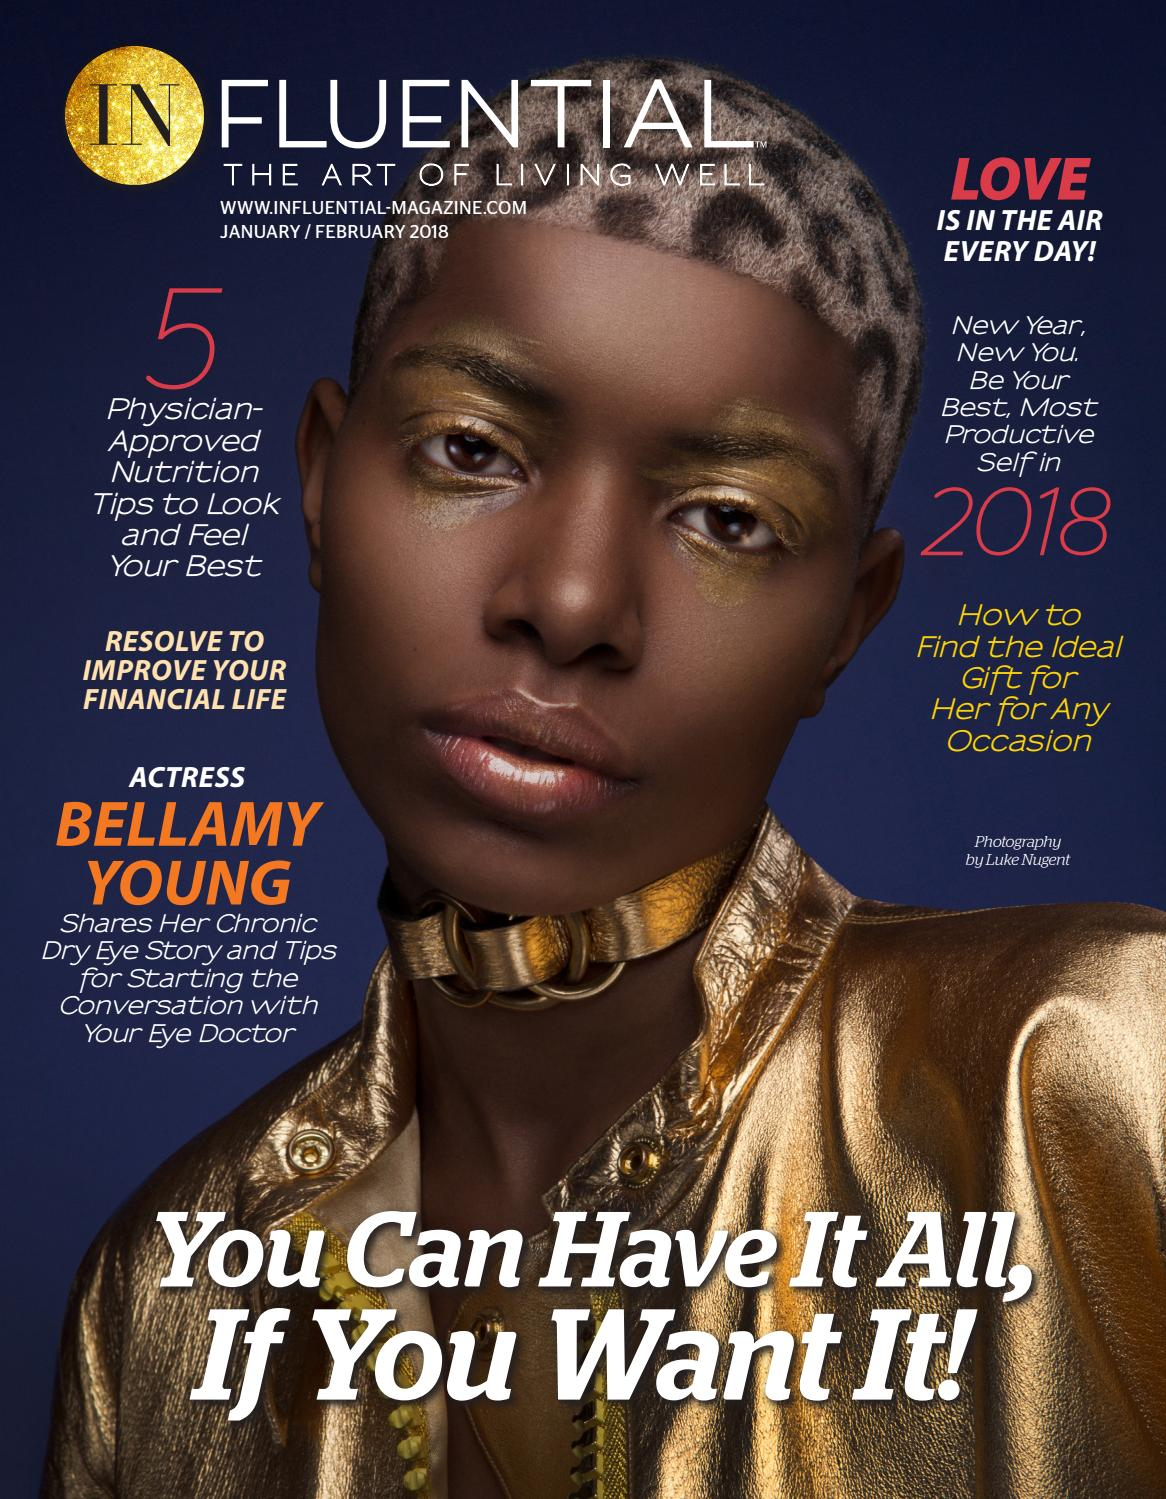 January / February 2018 InFluential Magazine, Spanish InFluential, and Teen  InFluential